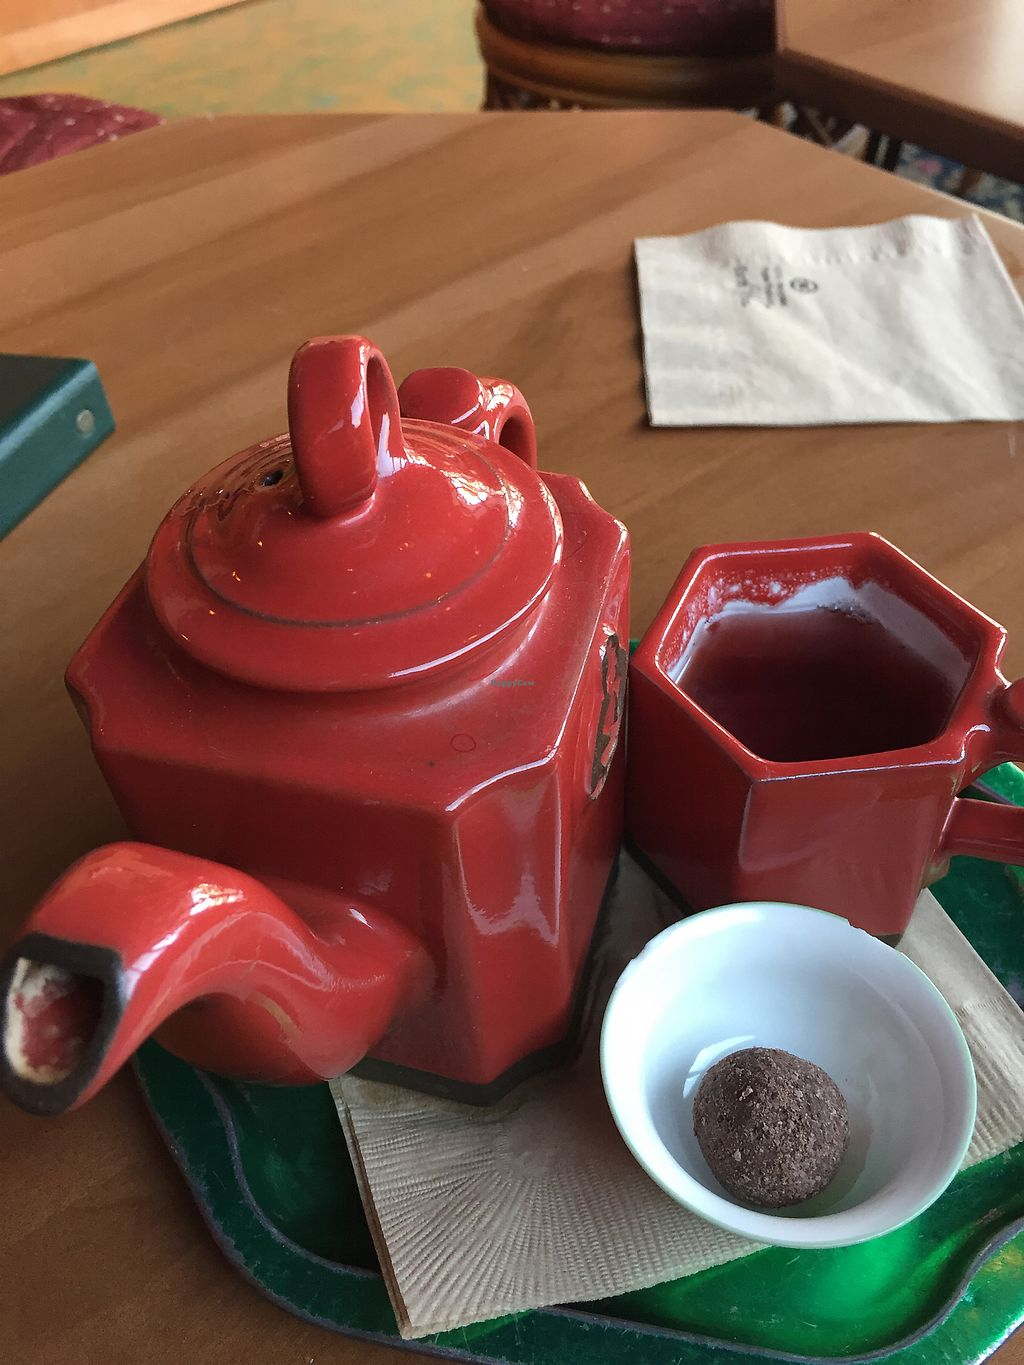 """Photo of Dobra Tea  by <a href=""""/members/profile/WolfPatrick"""">WolfPatrick</a> <br/>peppermint vegan truffle and eastern winds tea! <br/> November 28, 2017  - <a href='/contact/abuse/image/17748/330190'>Report</a>"""